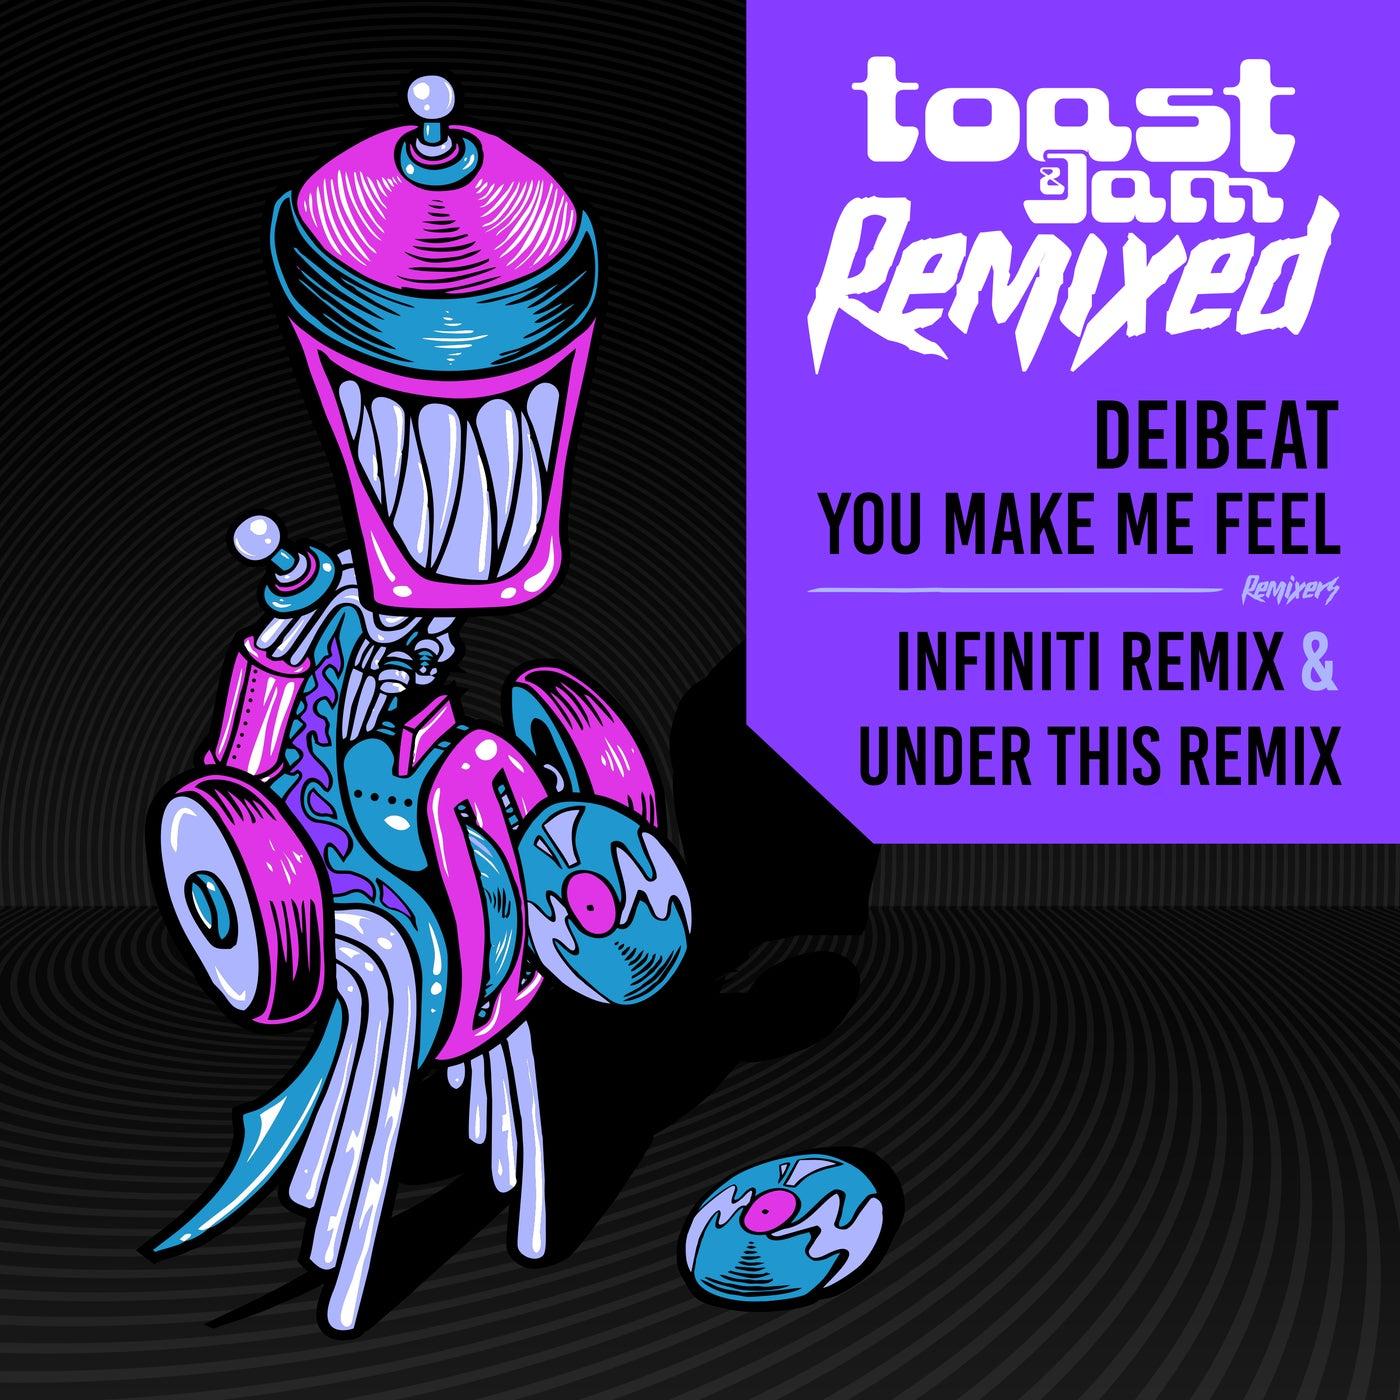 You Make Me Feel (Under This Remix)